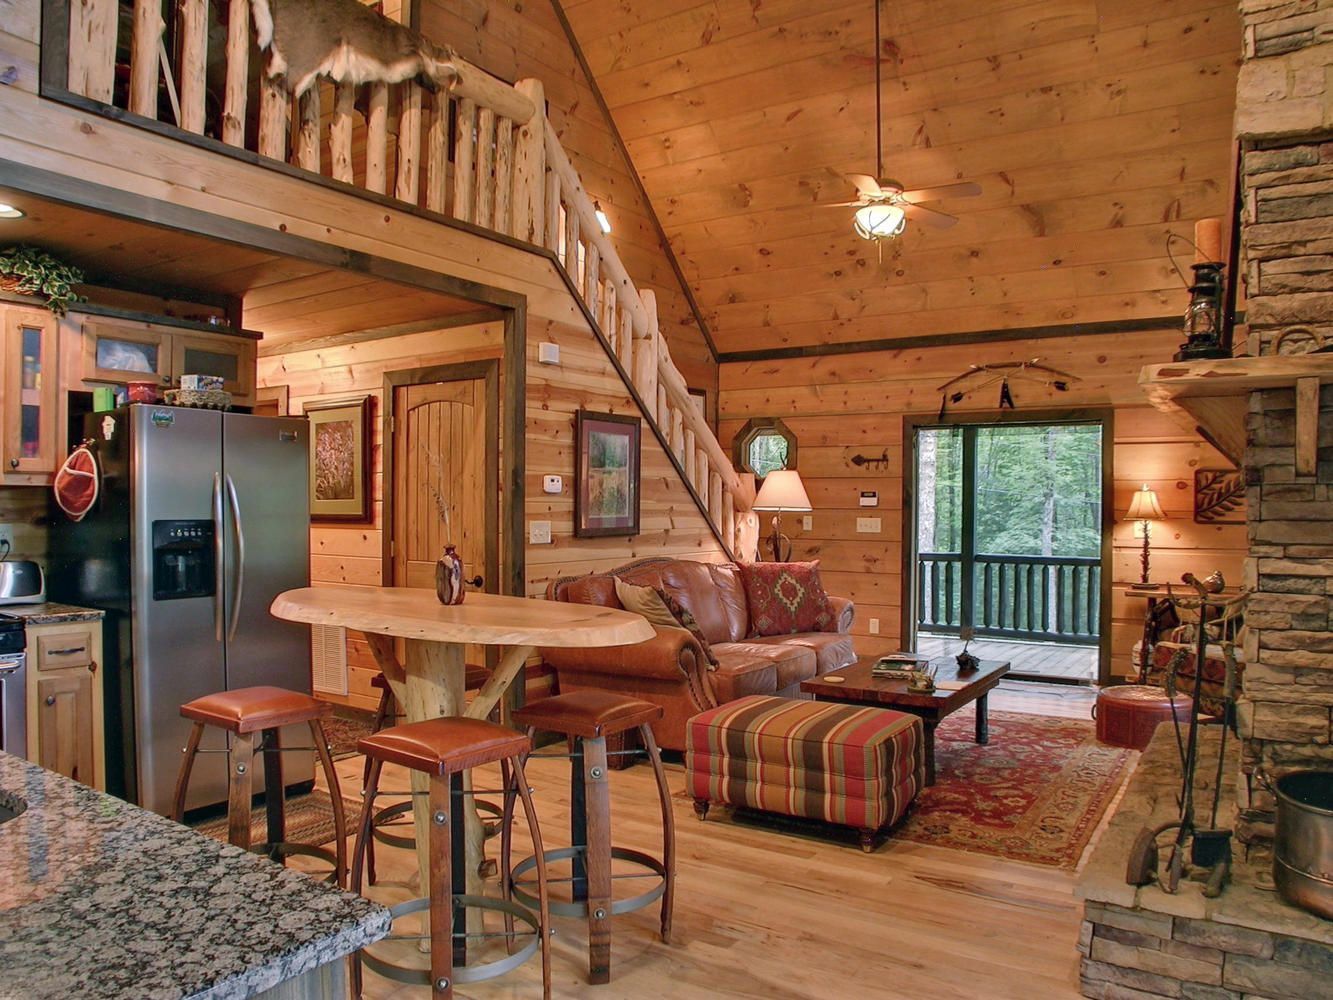 room cabin style living - Cabin Living Room Decor